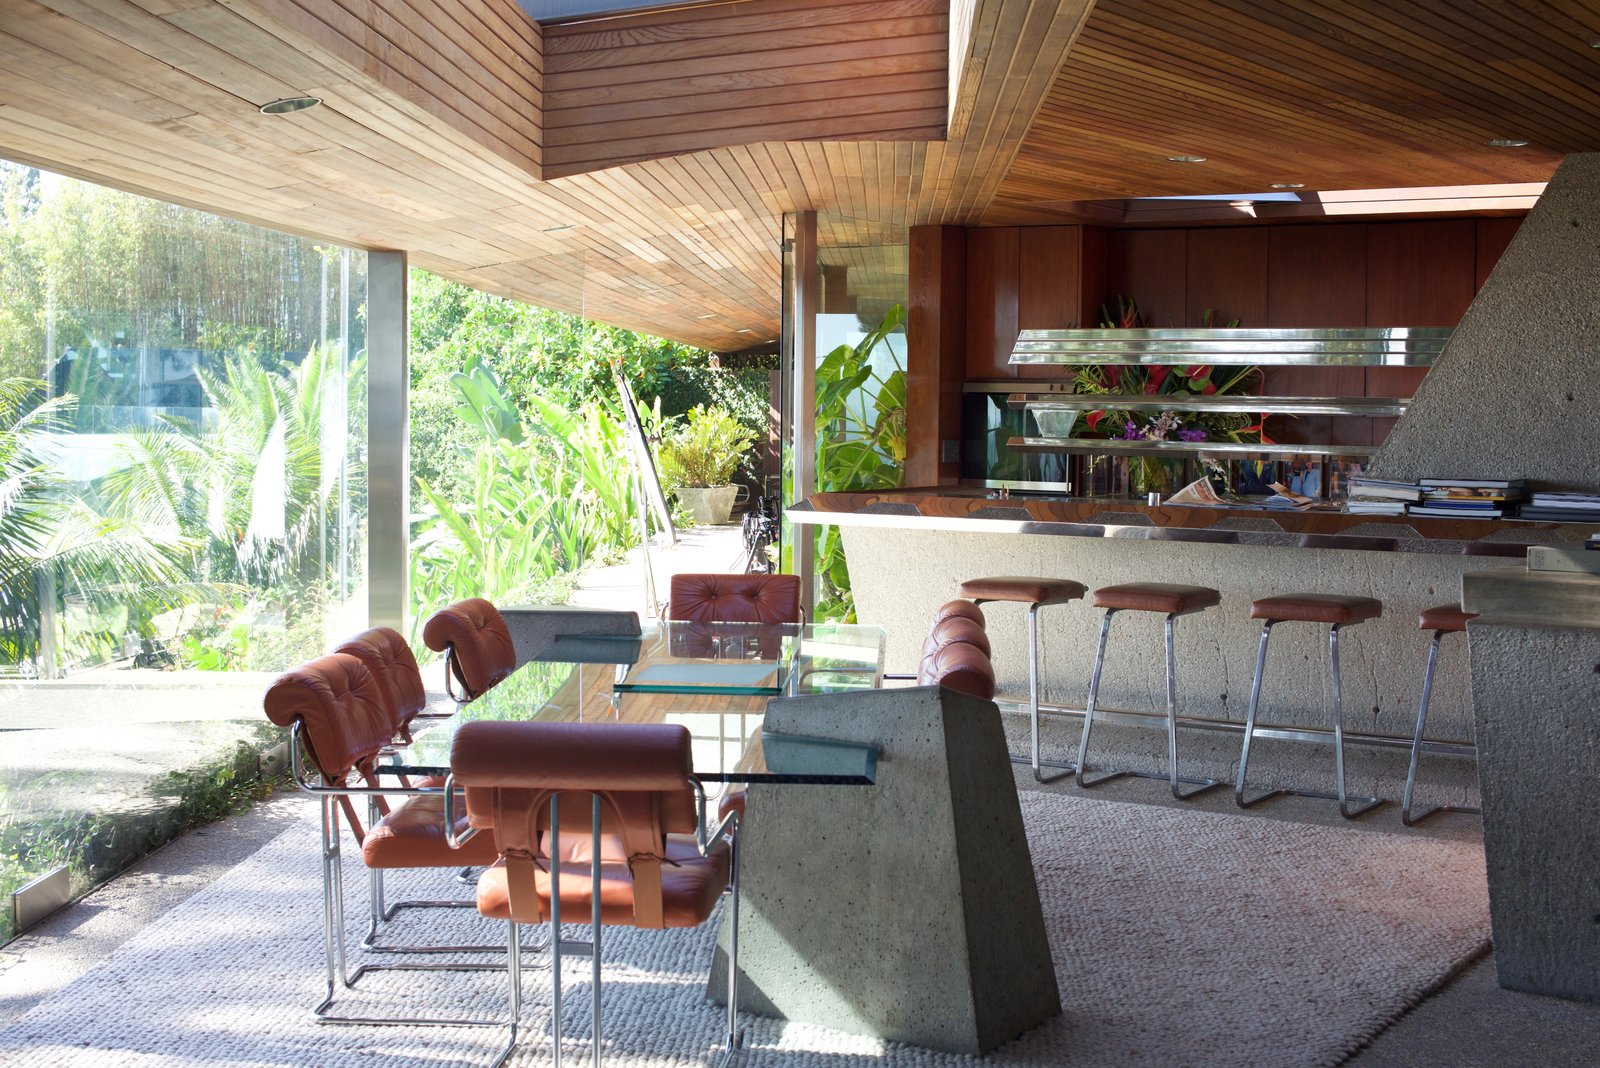 Photo 1 of 9 in Iconic Perspectives: John Lautner's Sheats-Goldstein Residence